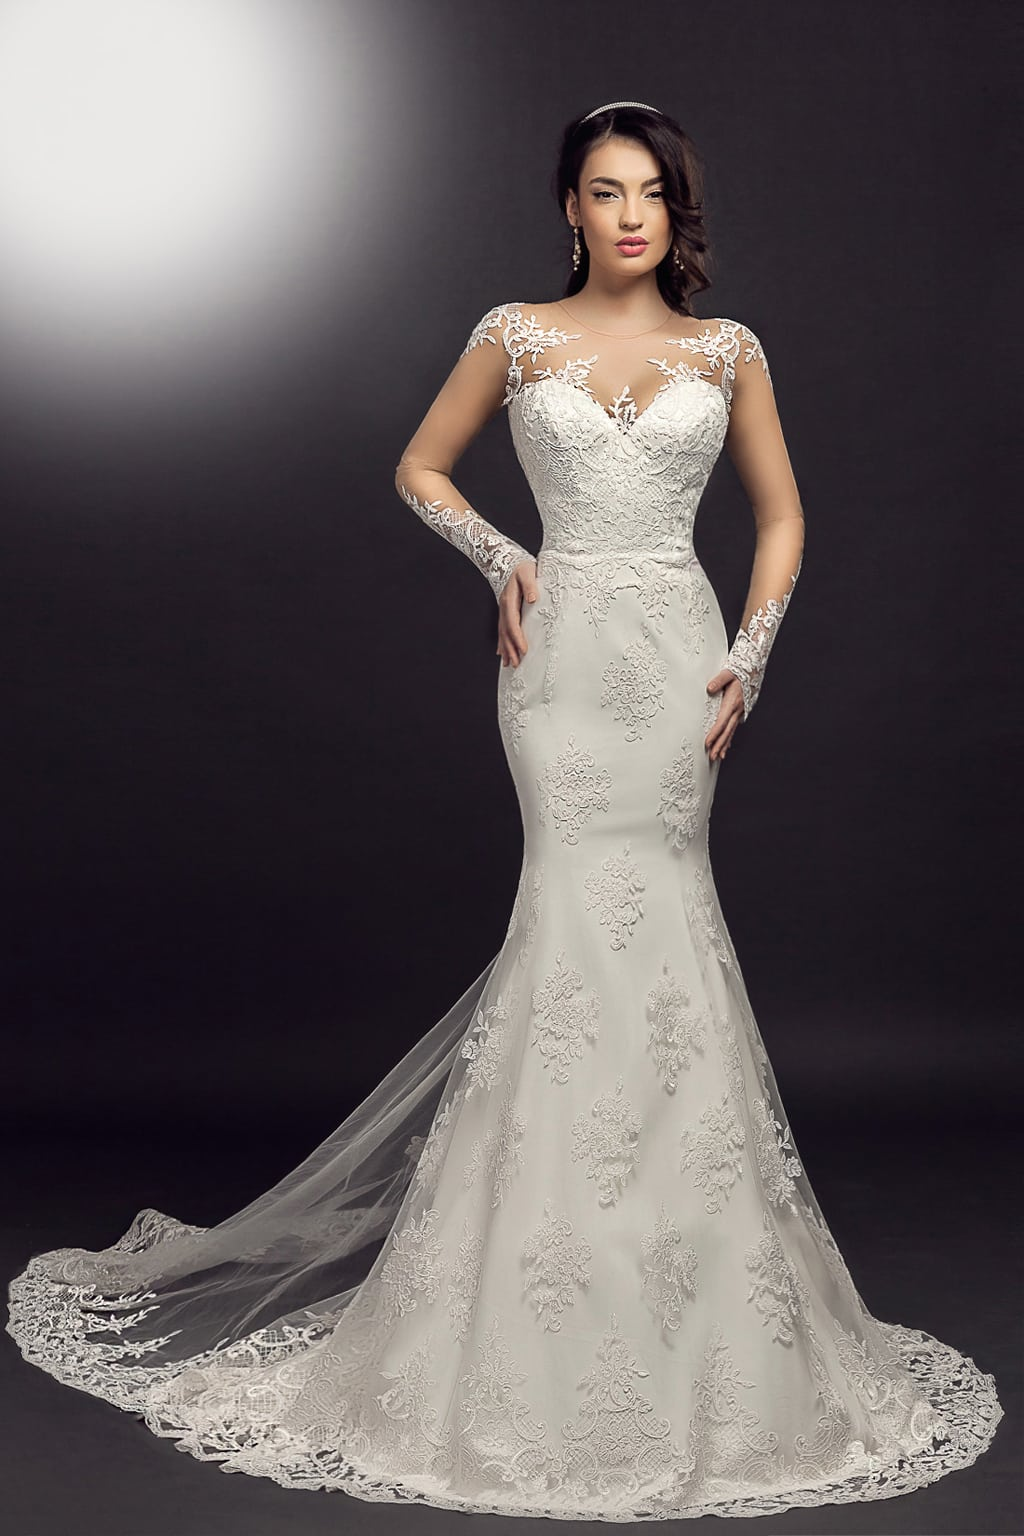 Pallas Model - Colectia Dreams - Adora Sposa